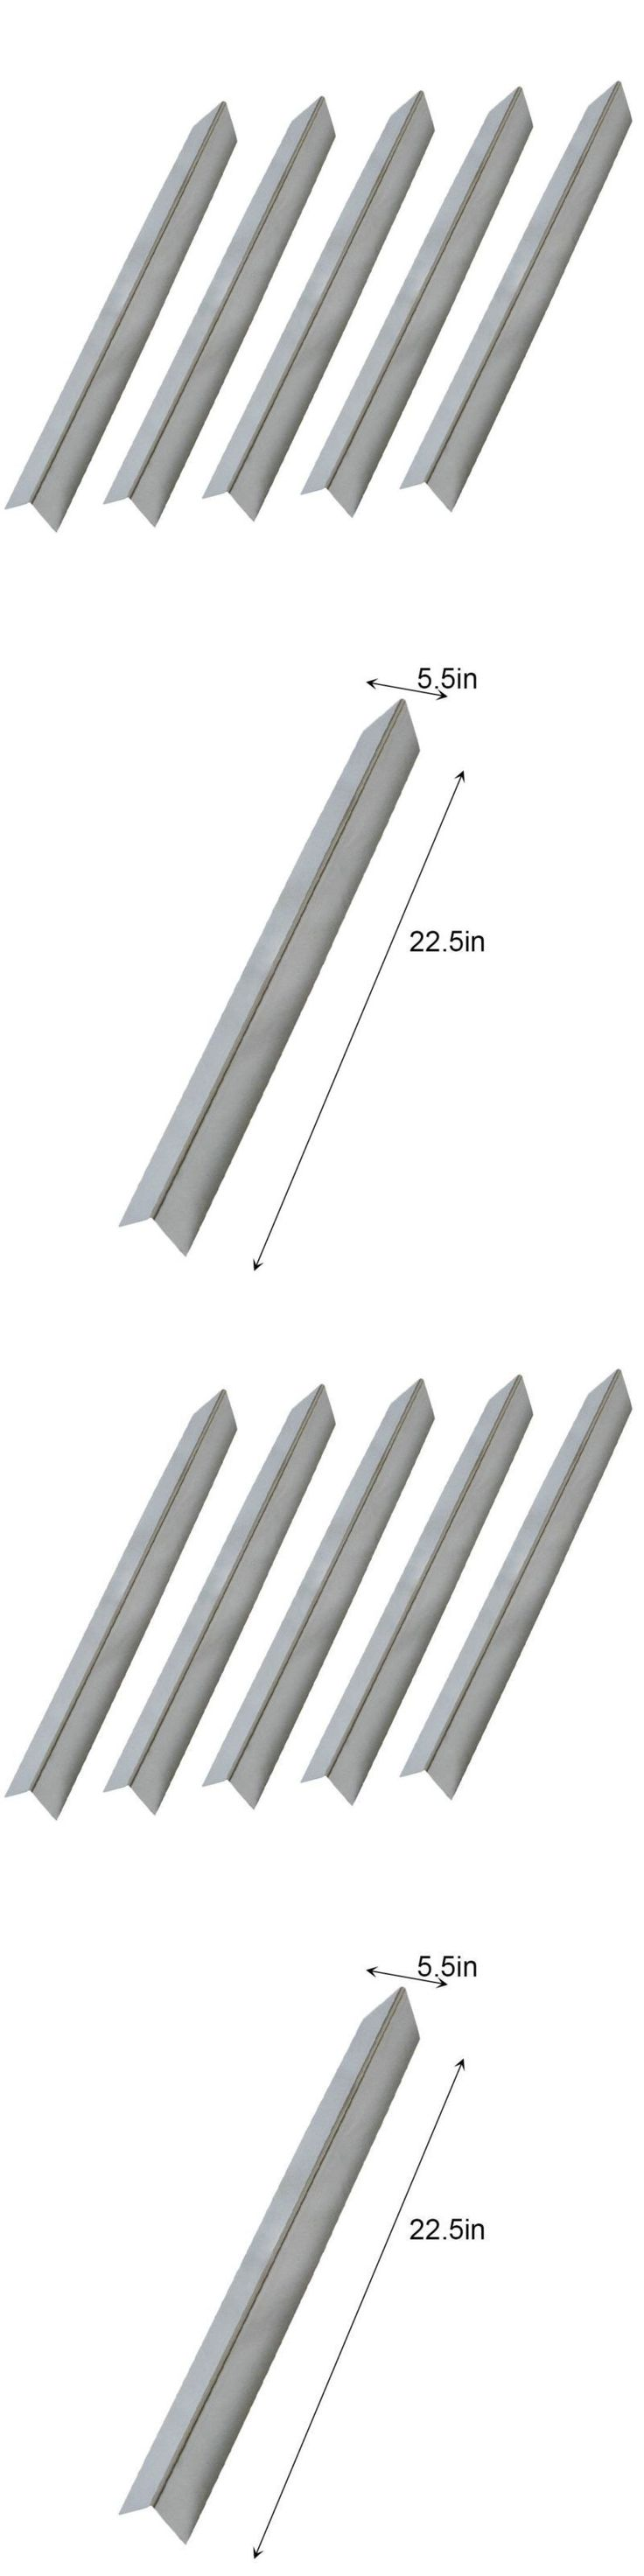 BBQ Tools and Accessories 20725: Bbq Gas Grill Stainless Steel 5 Flavorizer Bars 22.5 Replacement For Weber 7537 -> BUY IT NOW ONLY: $55.74 on eBay!